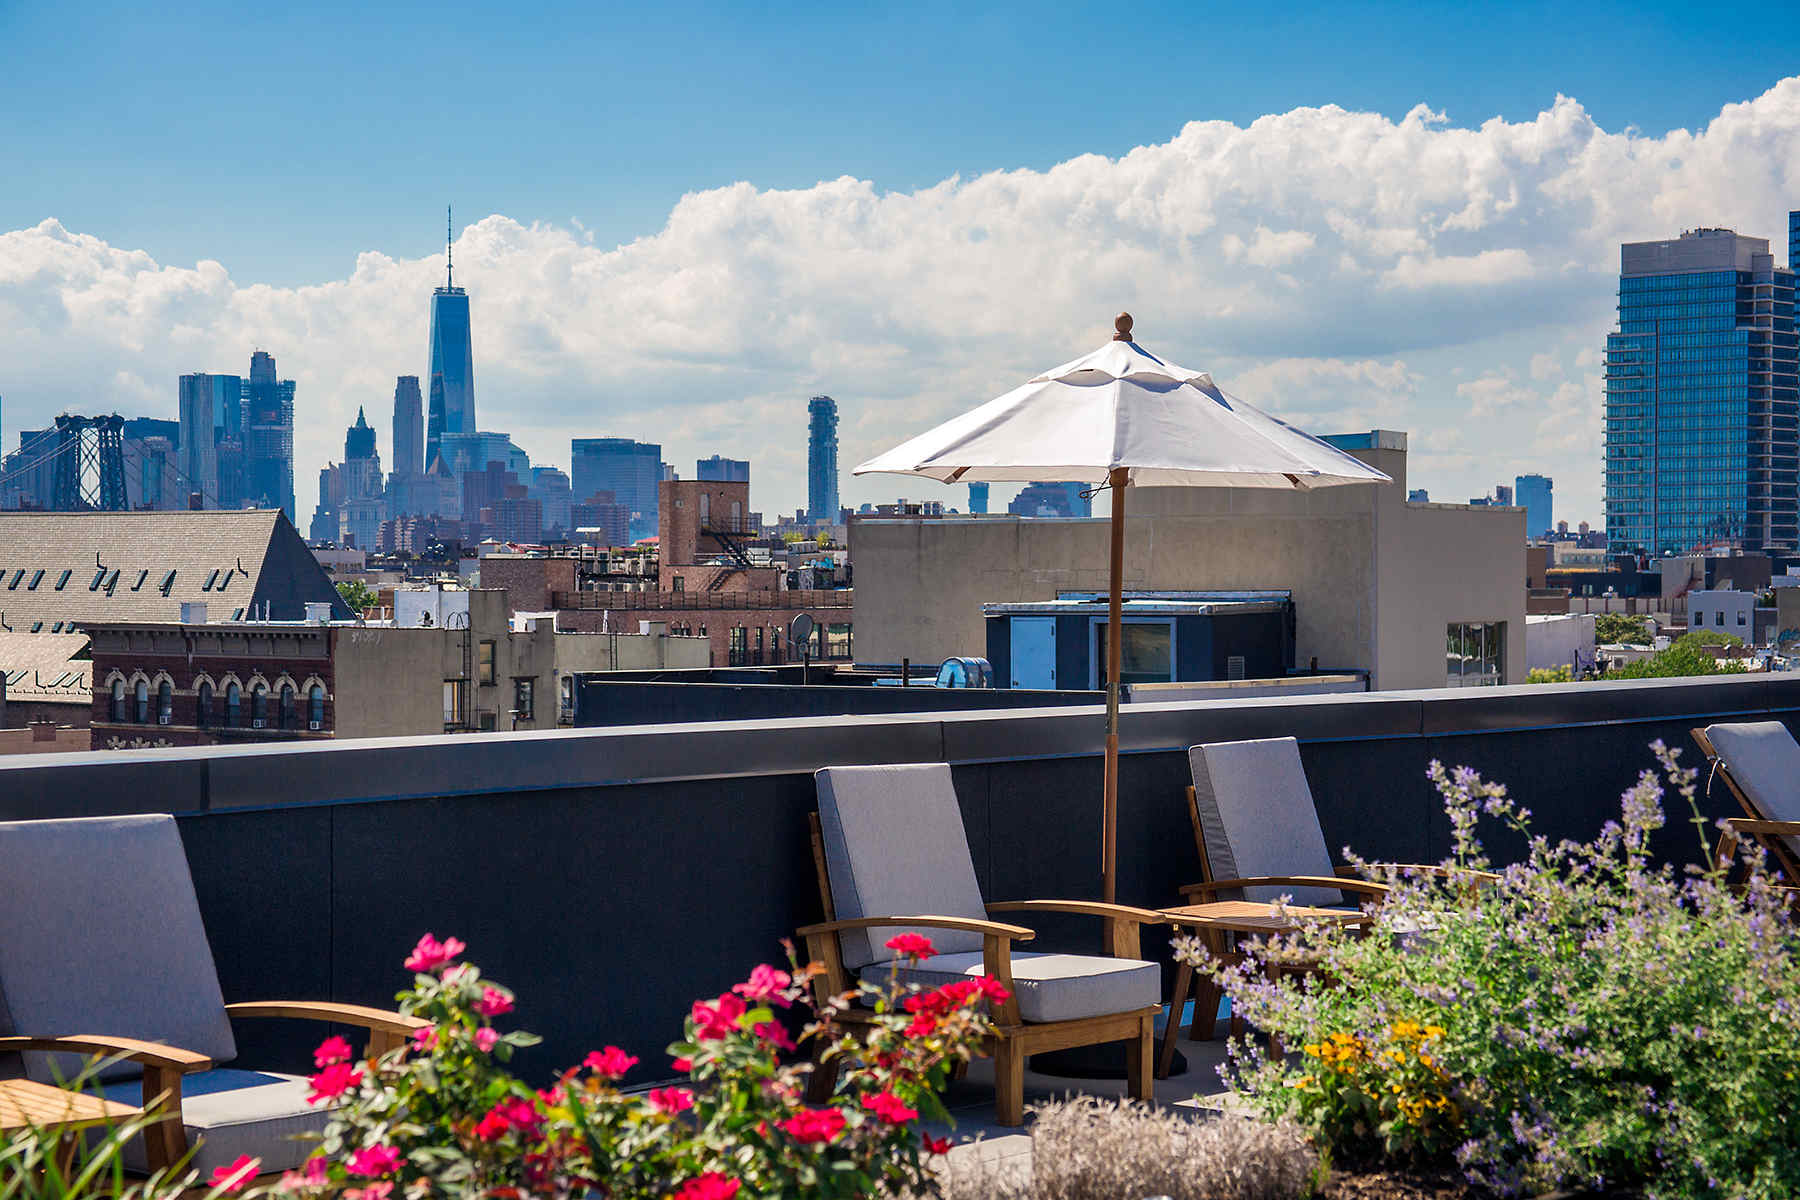 Rooftop with seating and umbrellas on a Brooklyn residential building facing the Manhattan skyline.  MEP designed by 2L Engineering.